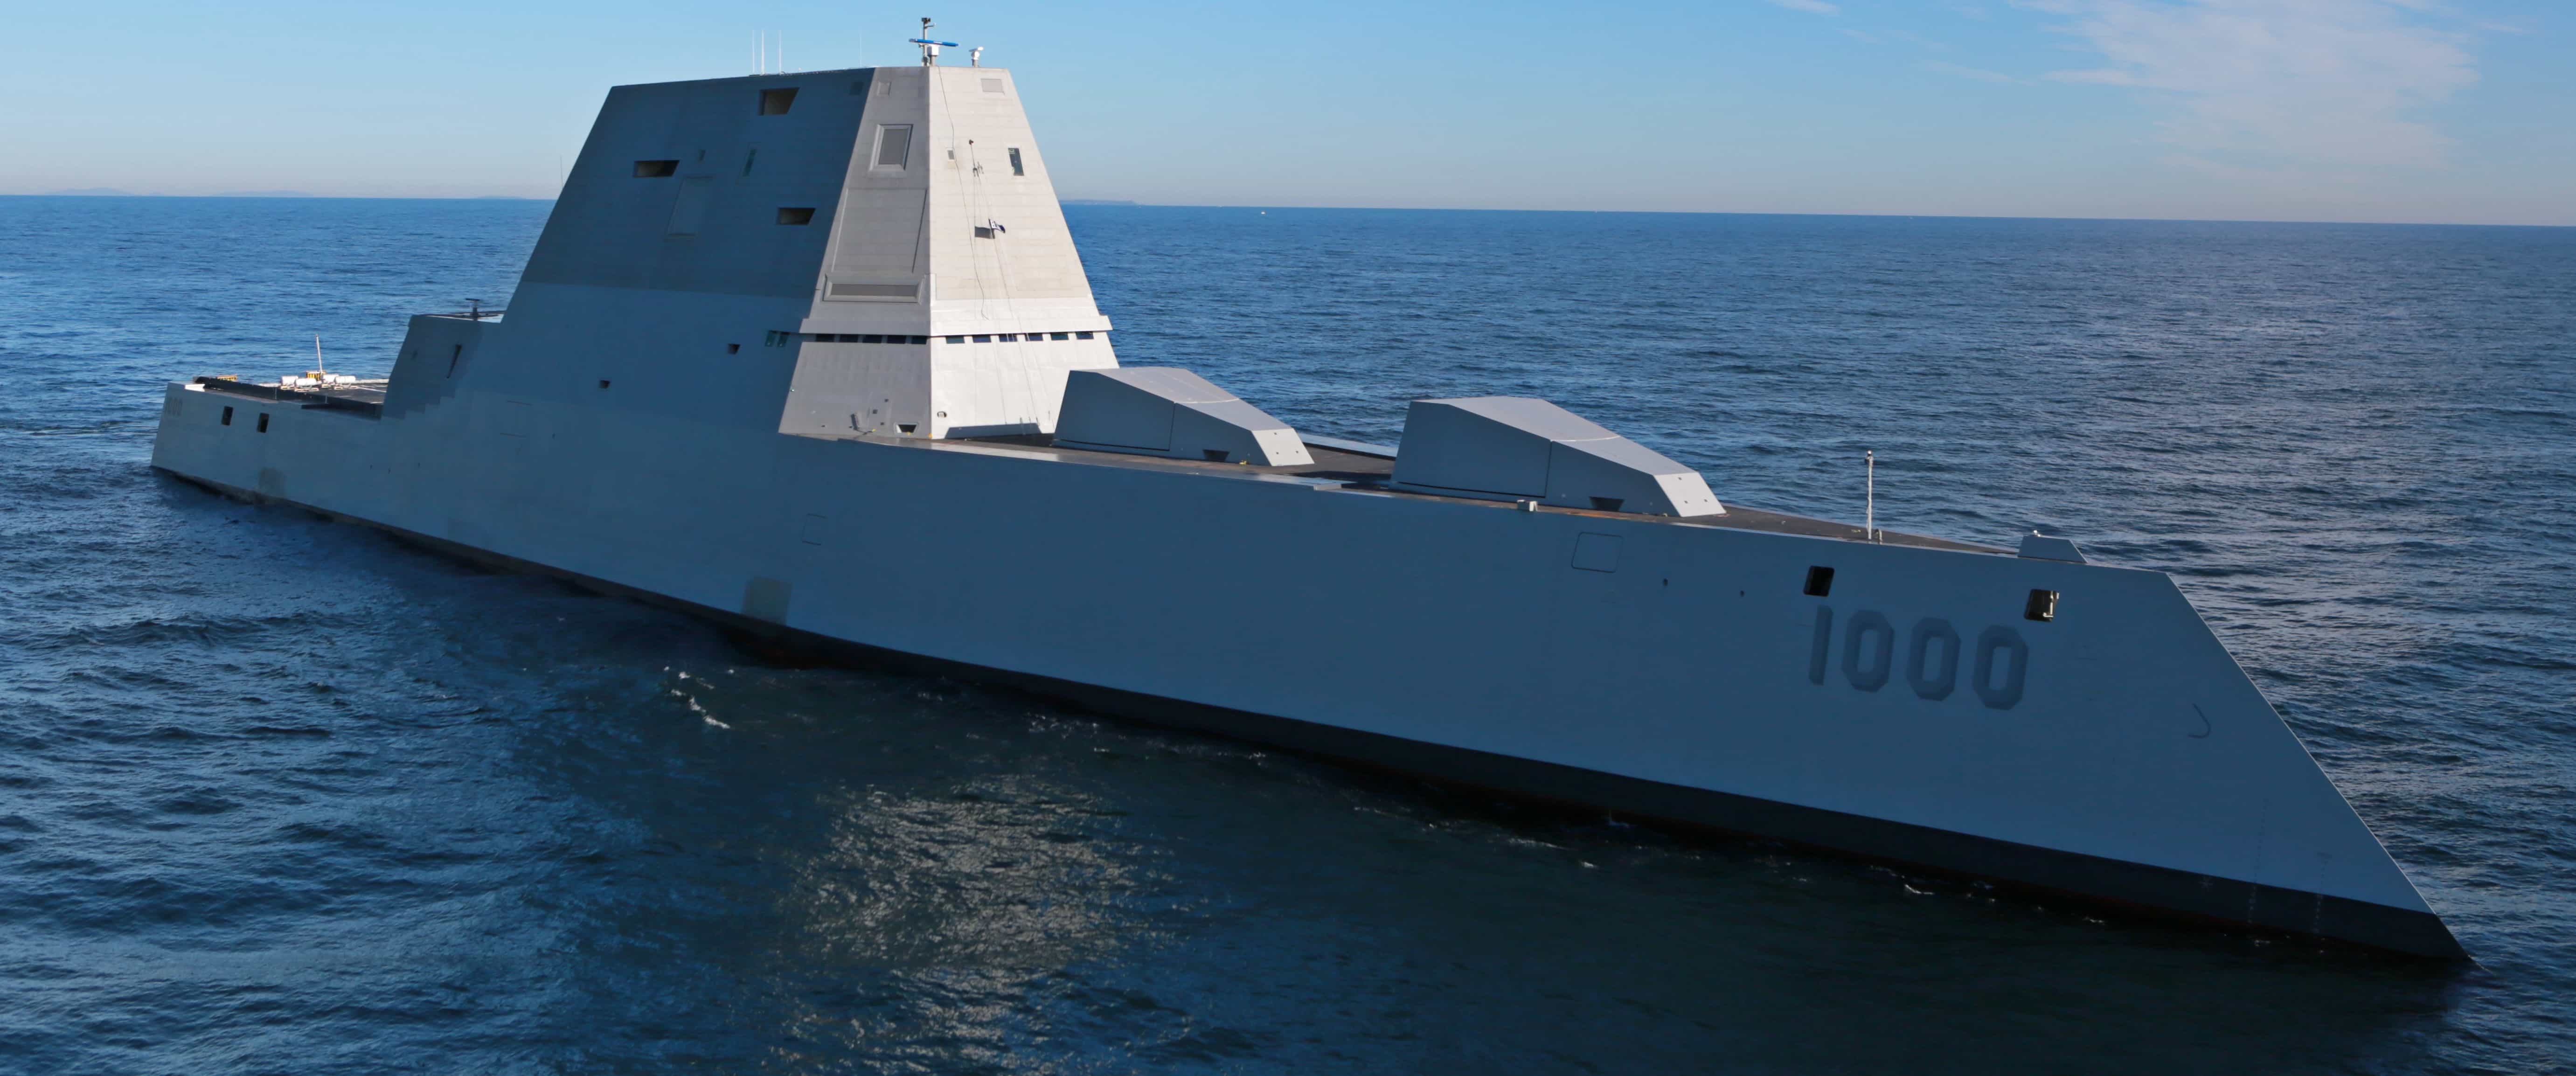 The USS Zumwalt in December 2015. Photo: US Navy.